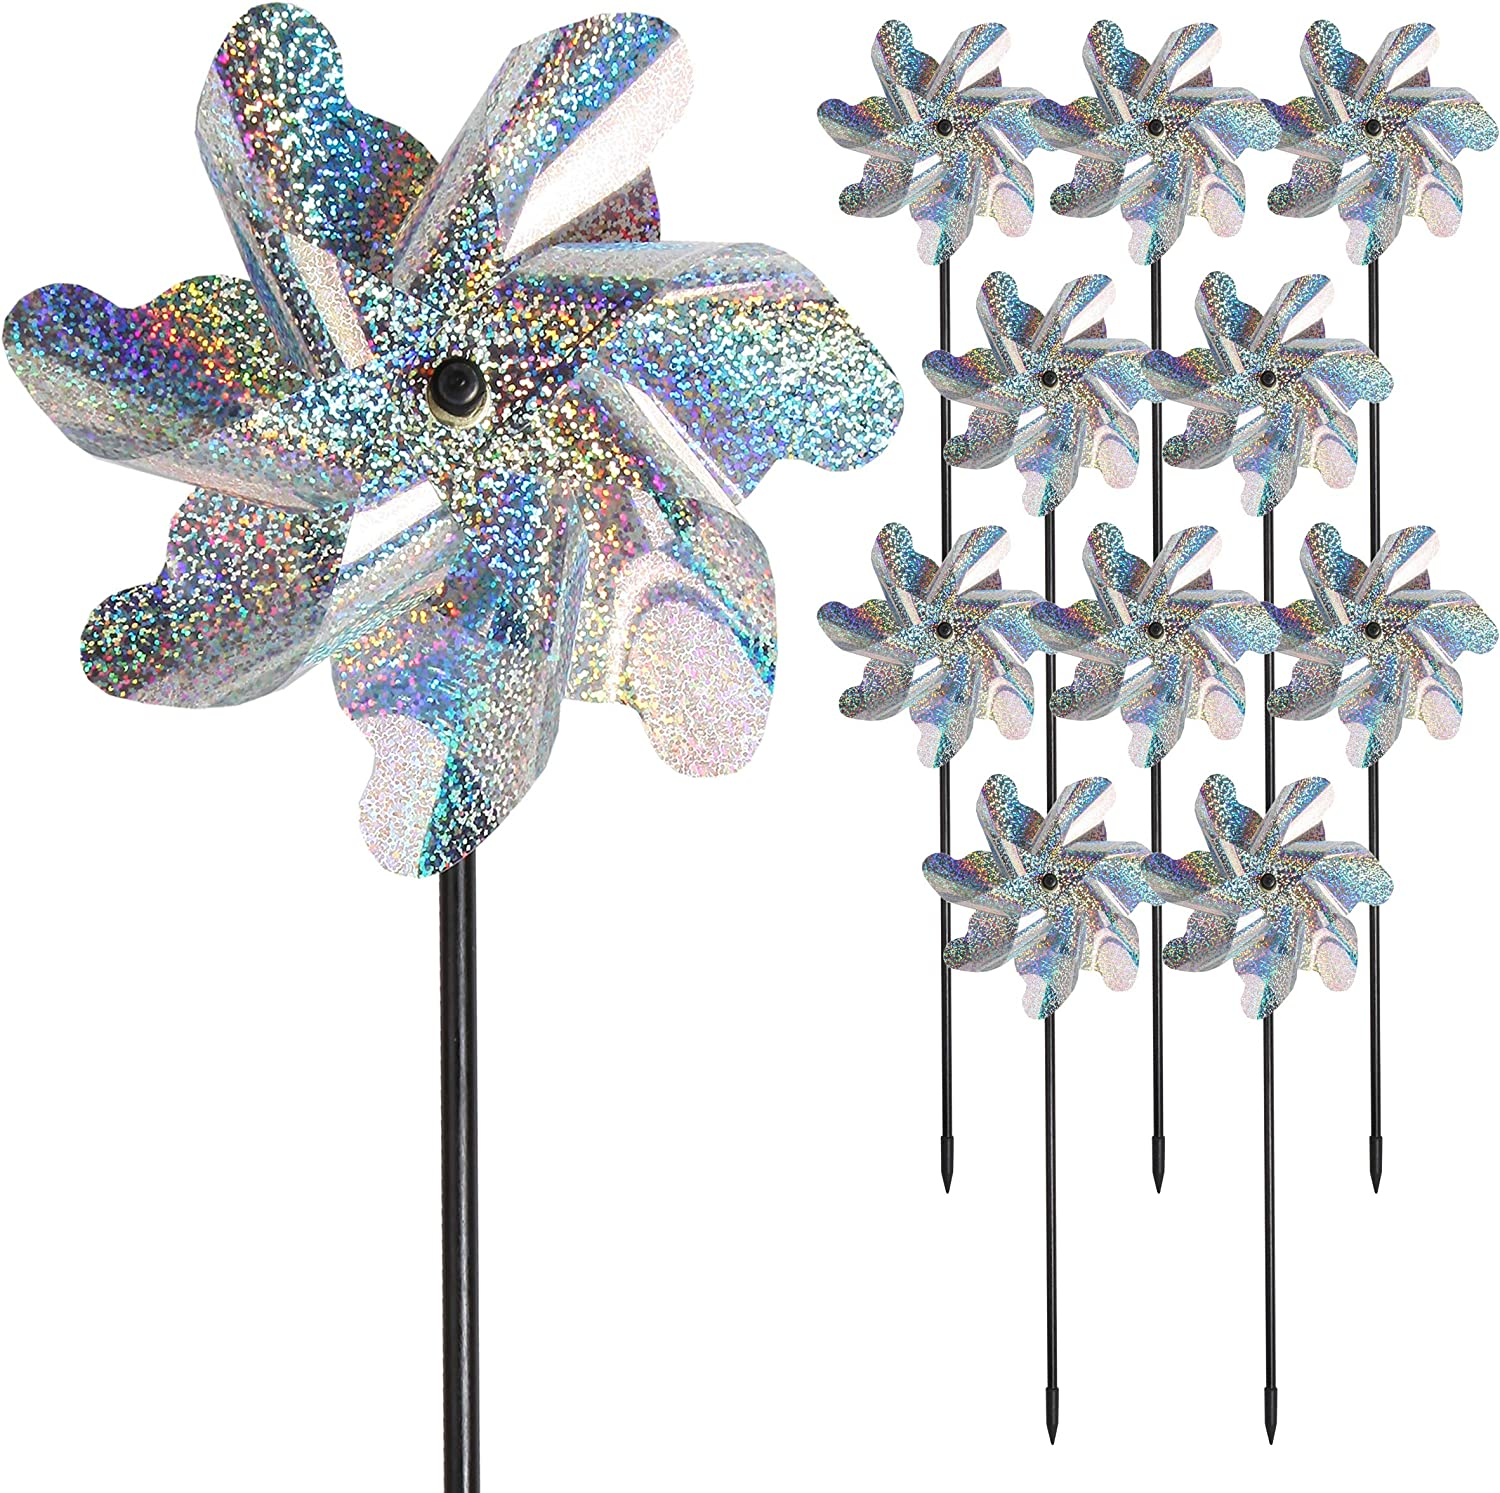 Bird Blinder Repellent Pinwheels, Effectively Keep Birds Away - Holographic Pin Wheels for Yard and Garden 15 inch Pinwheel Bird Deterrent, 10 Pack Garden Spinners, Great Geese Deterrent Product